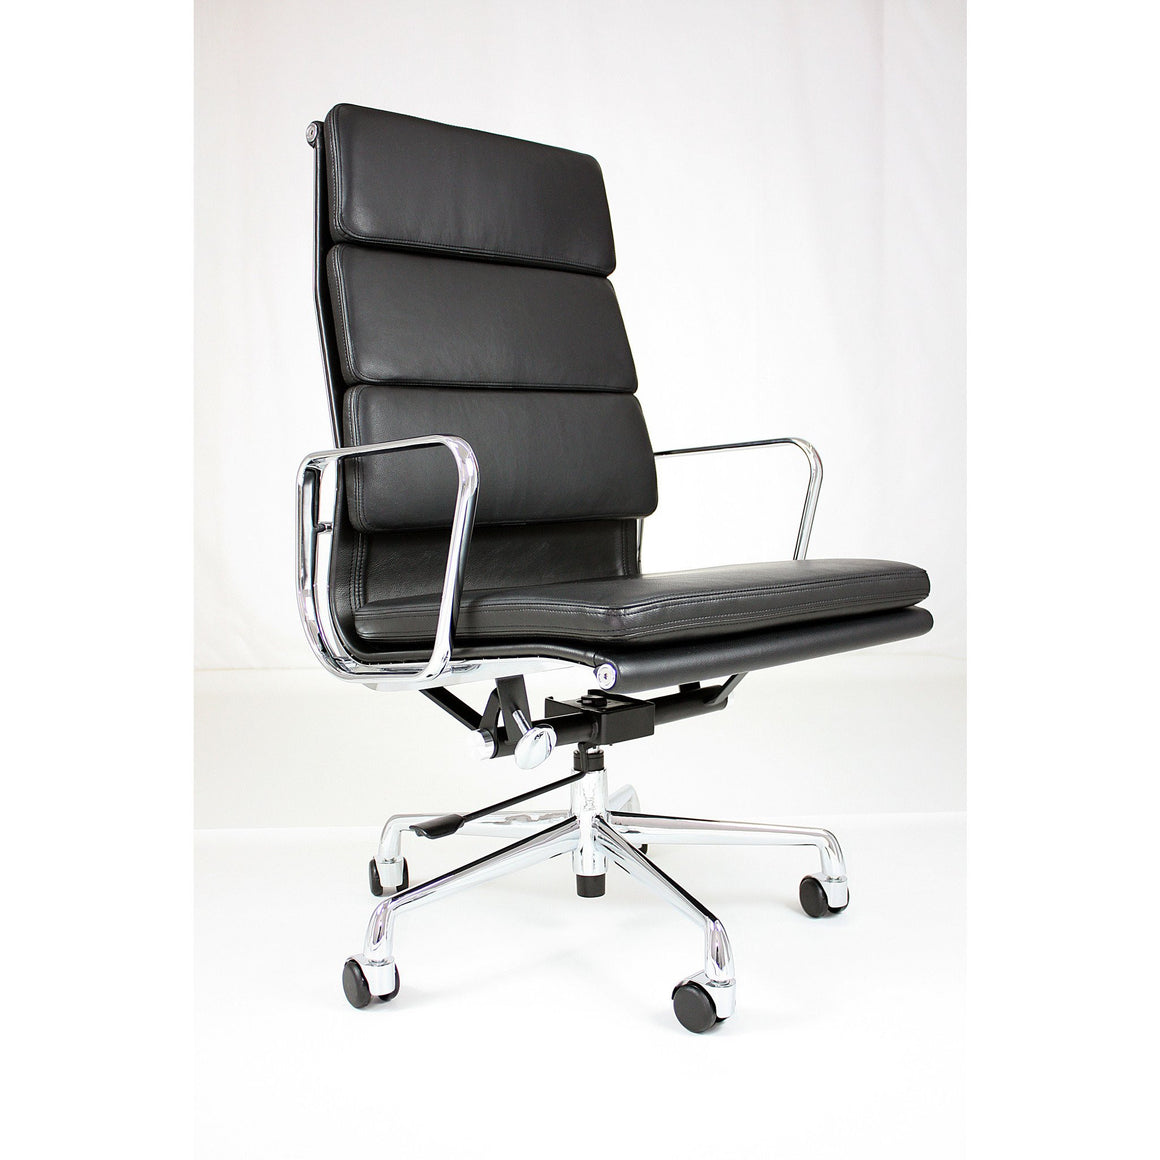 Emfurn Soft Pad Executive Chair , EMFURN - 1